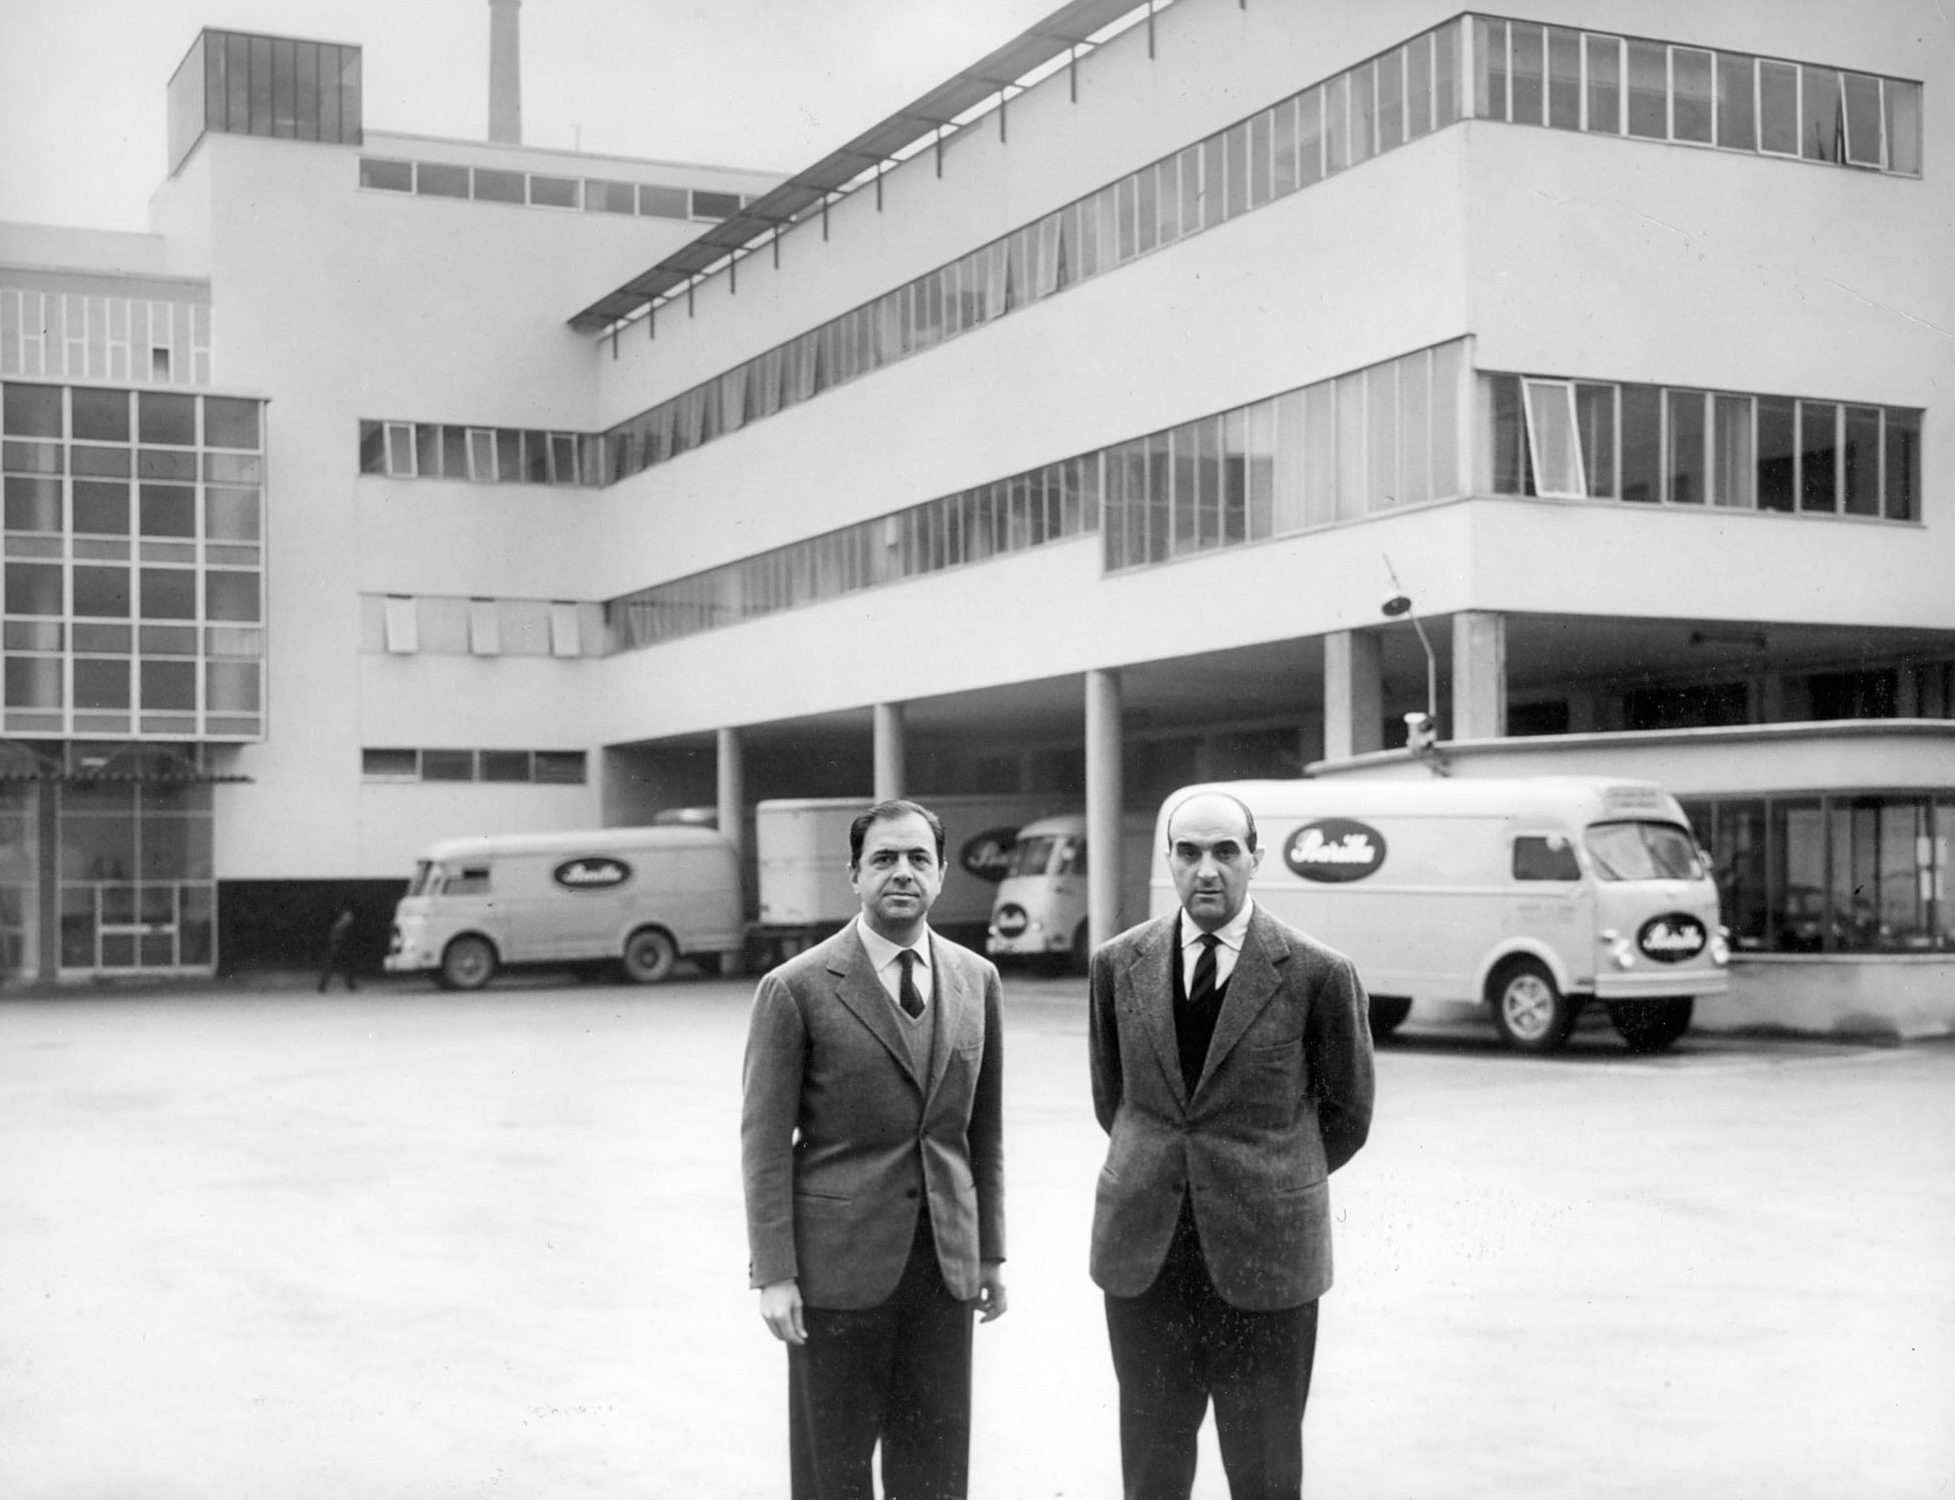 1955 - Gianni and Pietro Barilla in front of the renewed plant in Viale Veneto